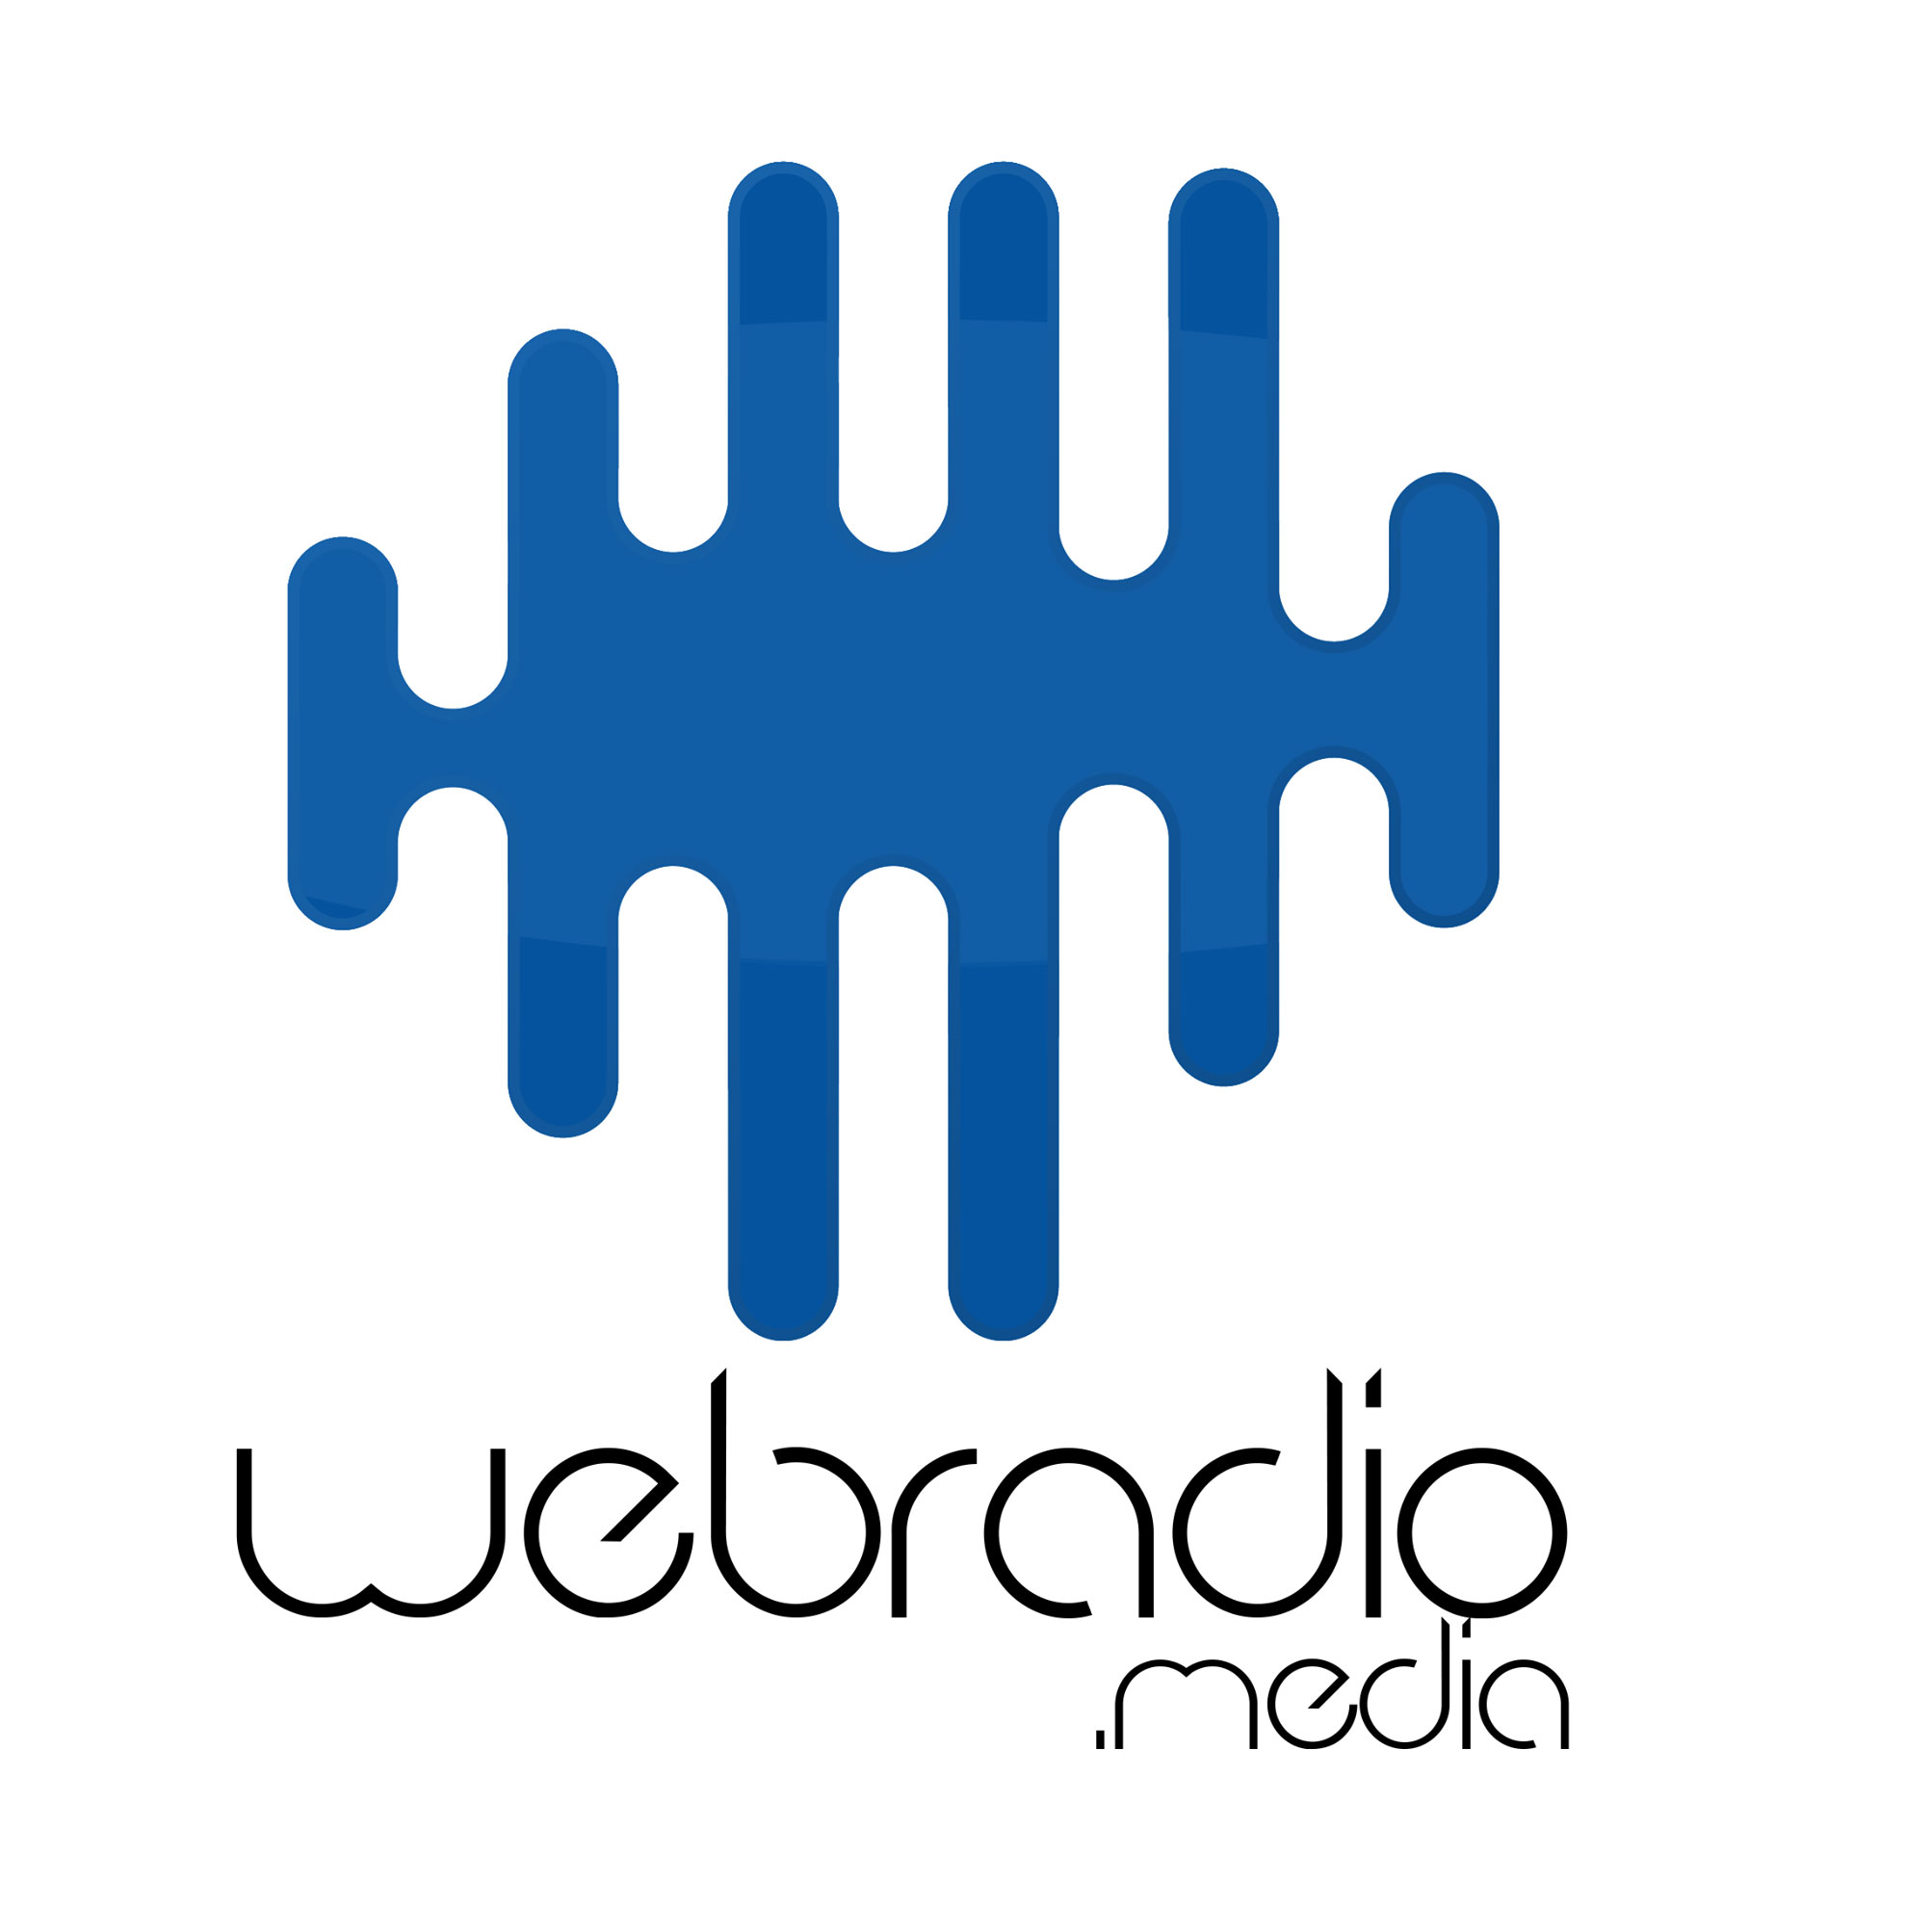 You are currently viewing webradiomedia